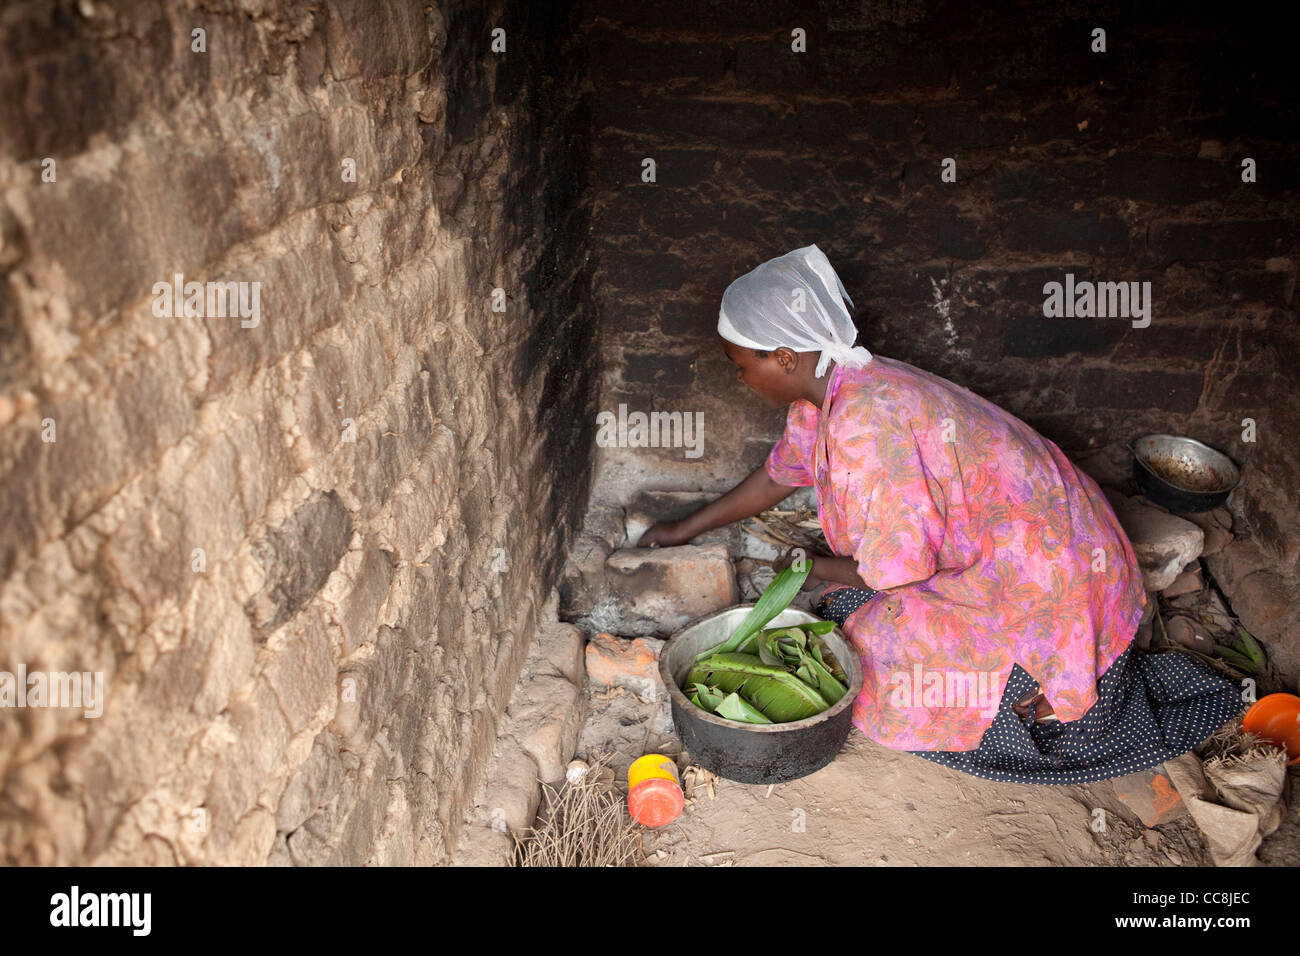 A woman cooks over an open stove in Masaka, Uganda, East Africa - Stock Image